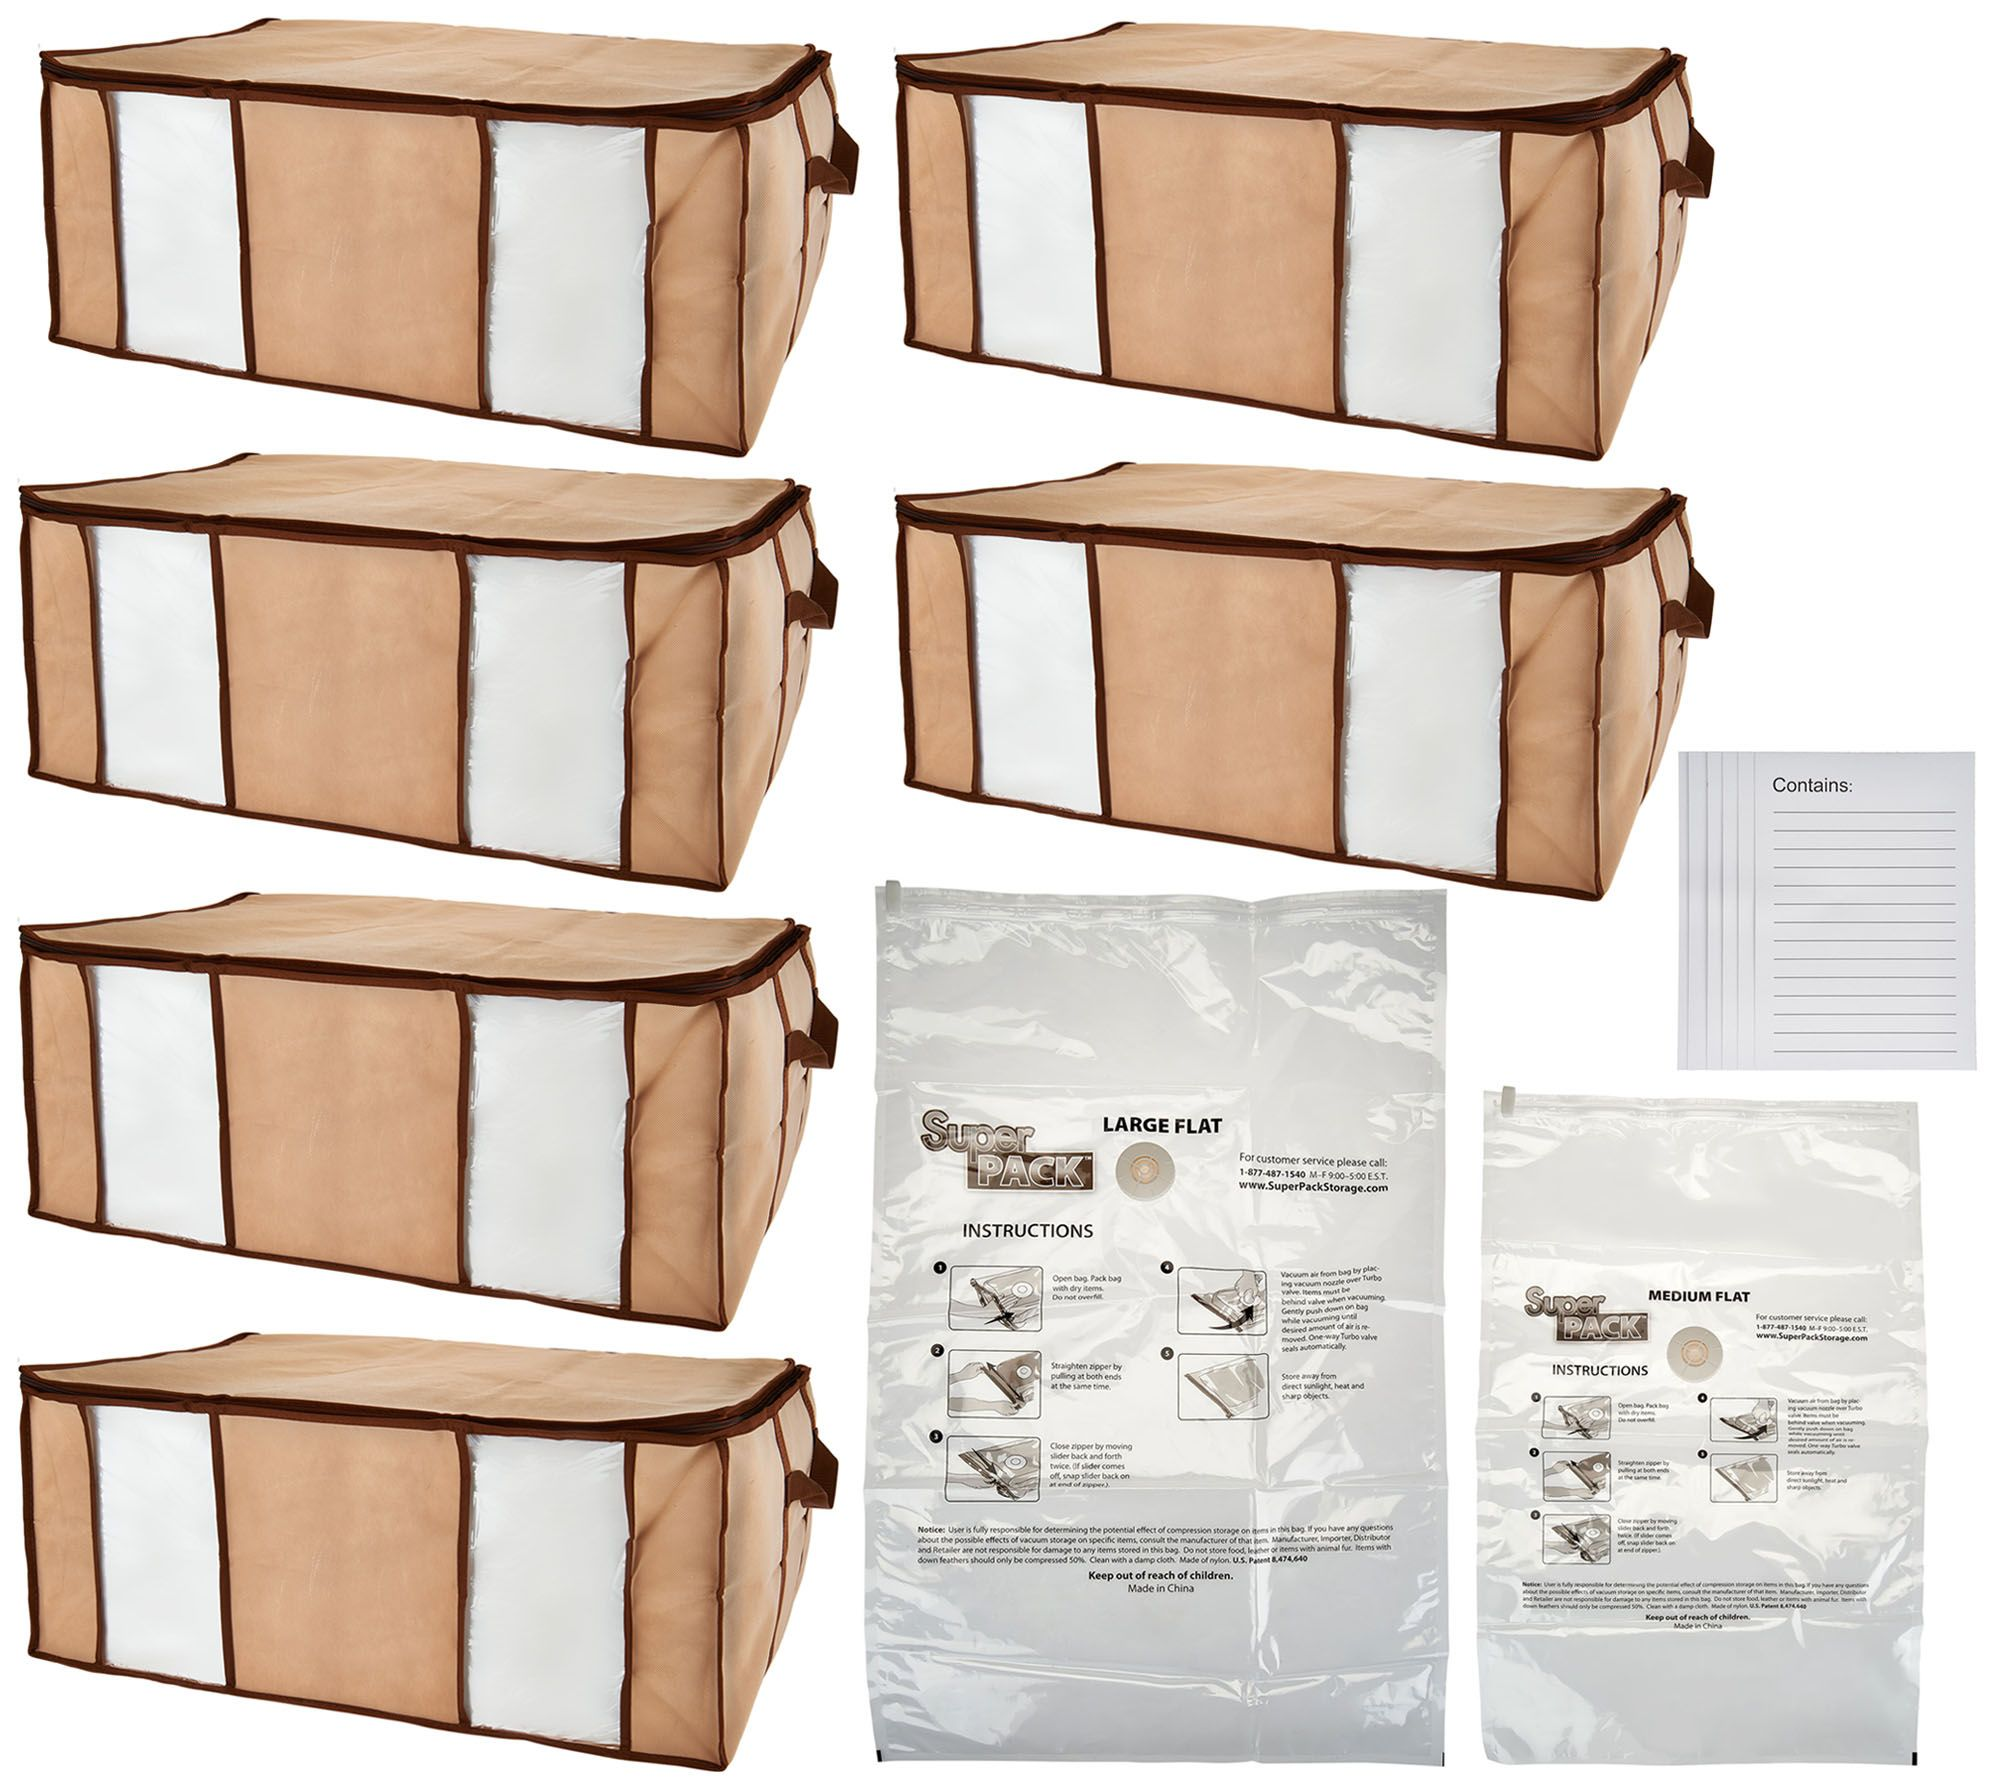 organized options u2014 storage solutions and ideas u2014 qvc com